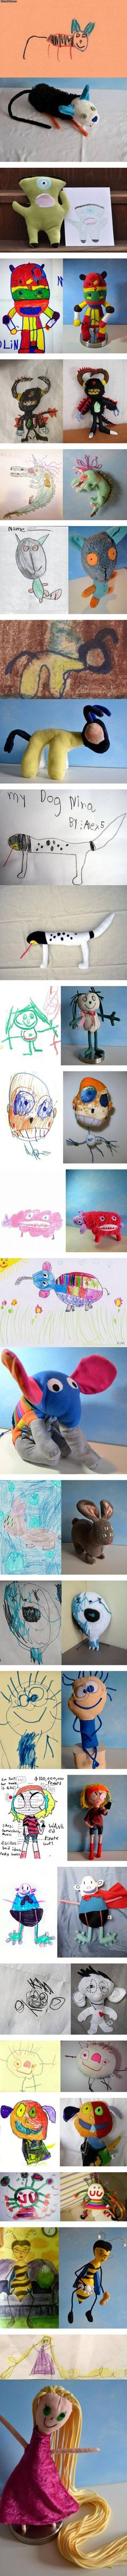 Stuffed animals made from children's drawings  (awwww)